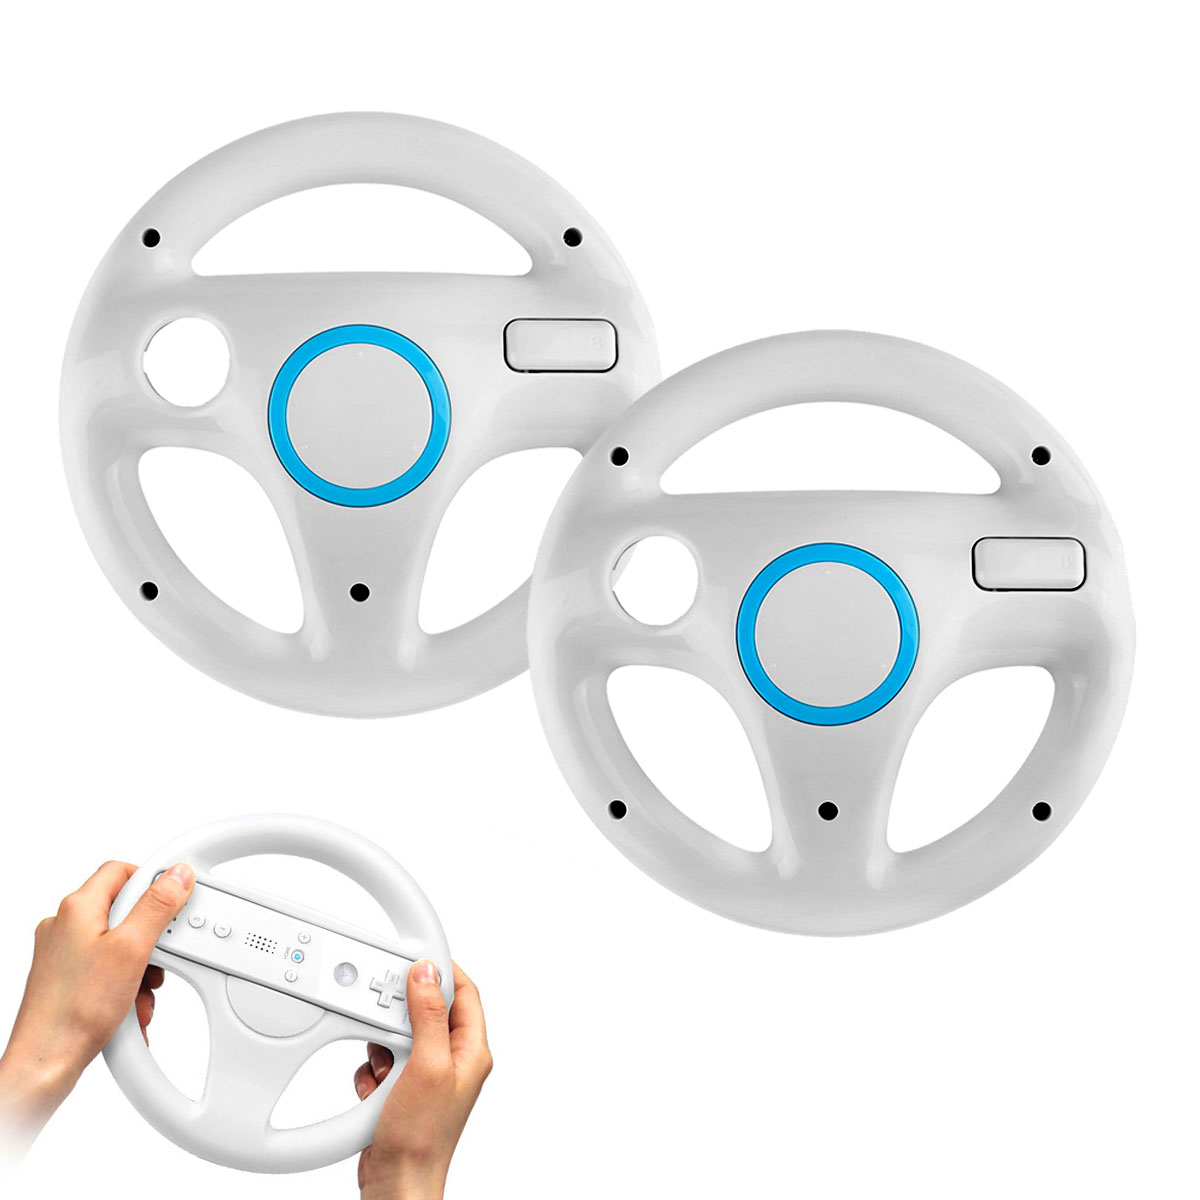 EEEKit 2 Pack Mario Kart Racing Steering Wheel Handle for Nintendo Wii Game Remote